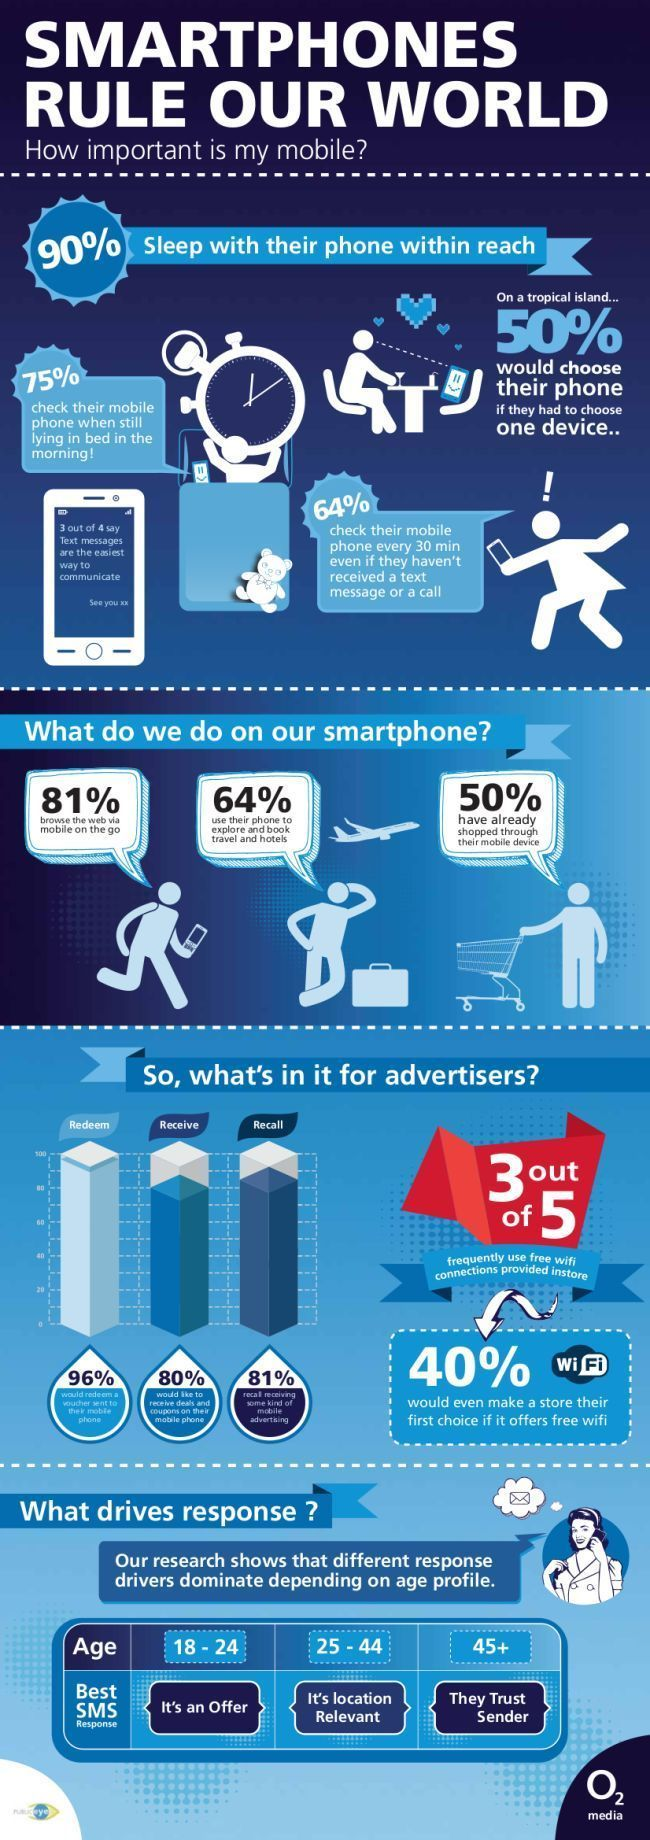 Smartphones have made us all information addicts